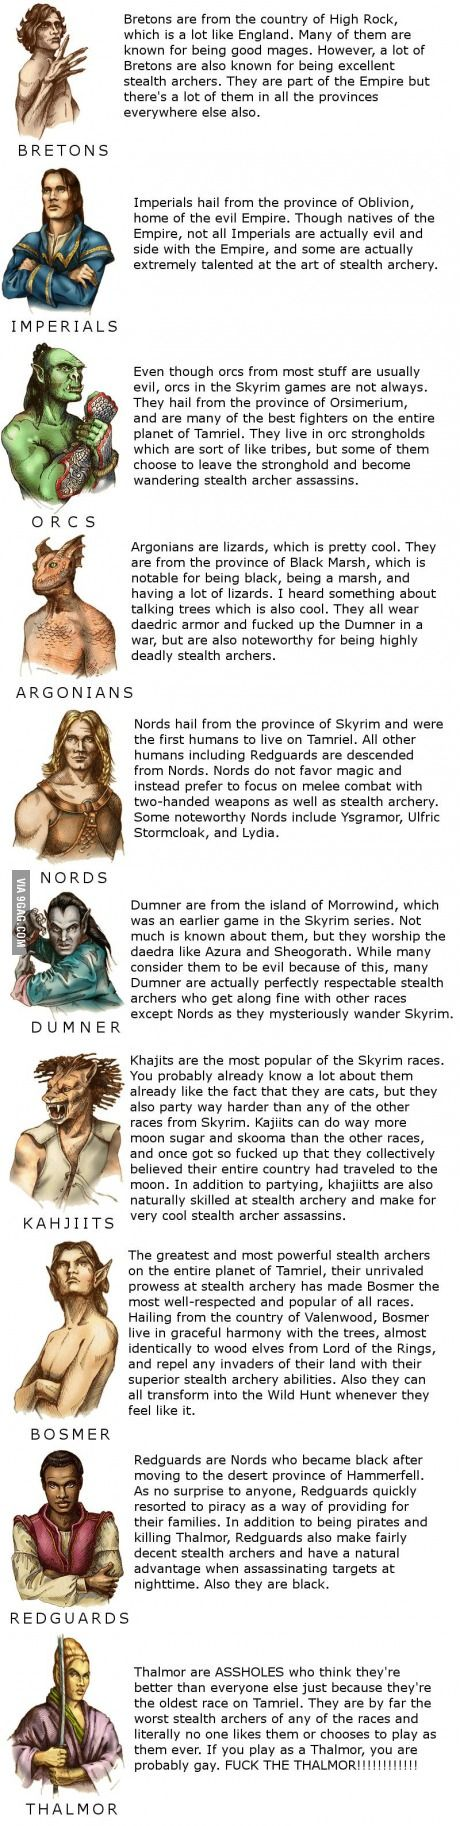 The races of Skyrim nords, dunmer, Khajiit, bosmer, Bretons, imperials, orcs, argonians, redgaurds, high elves